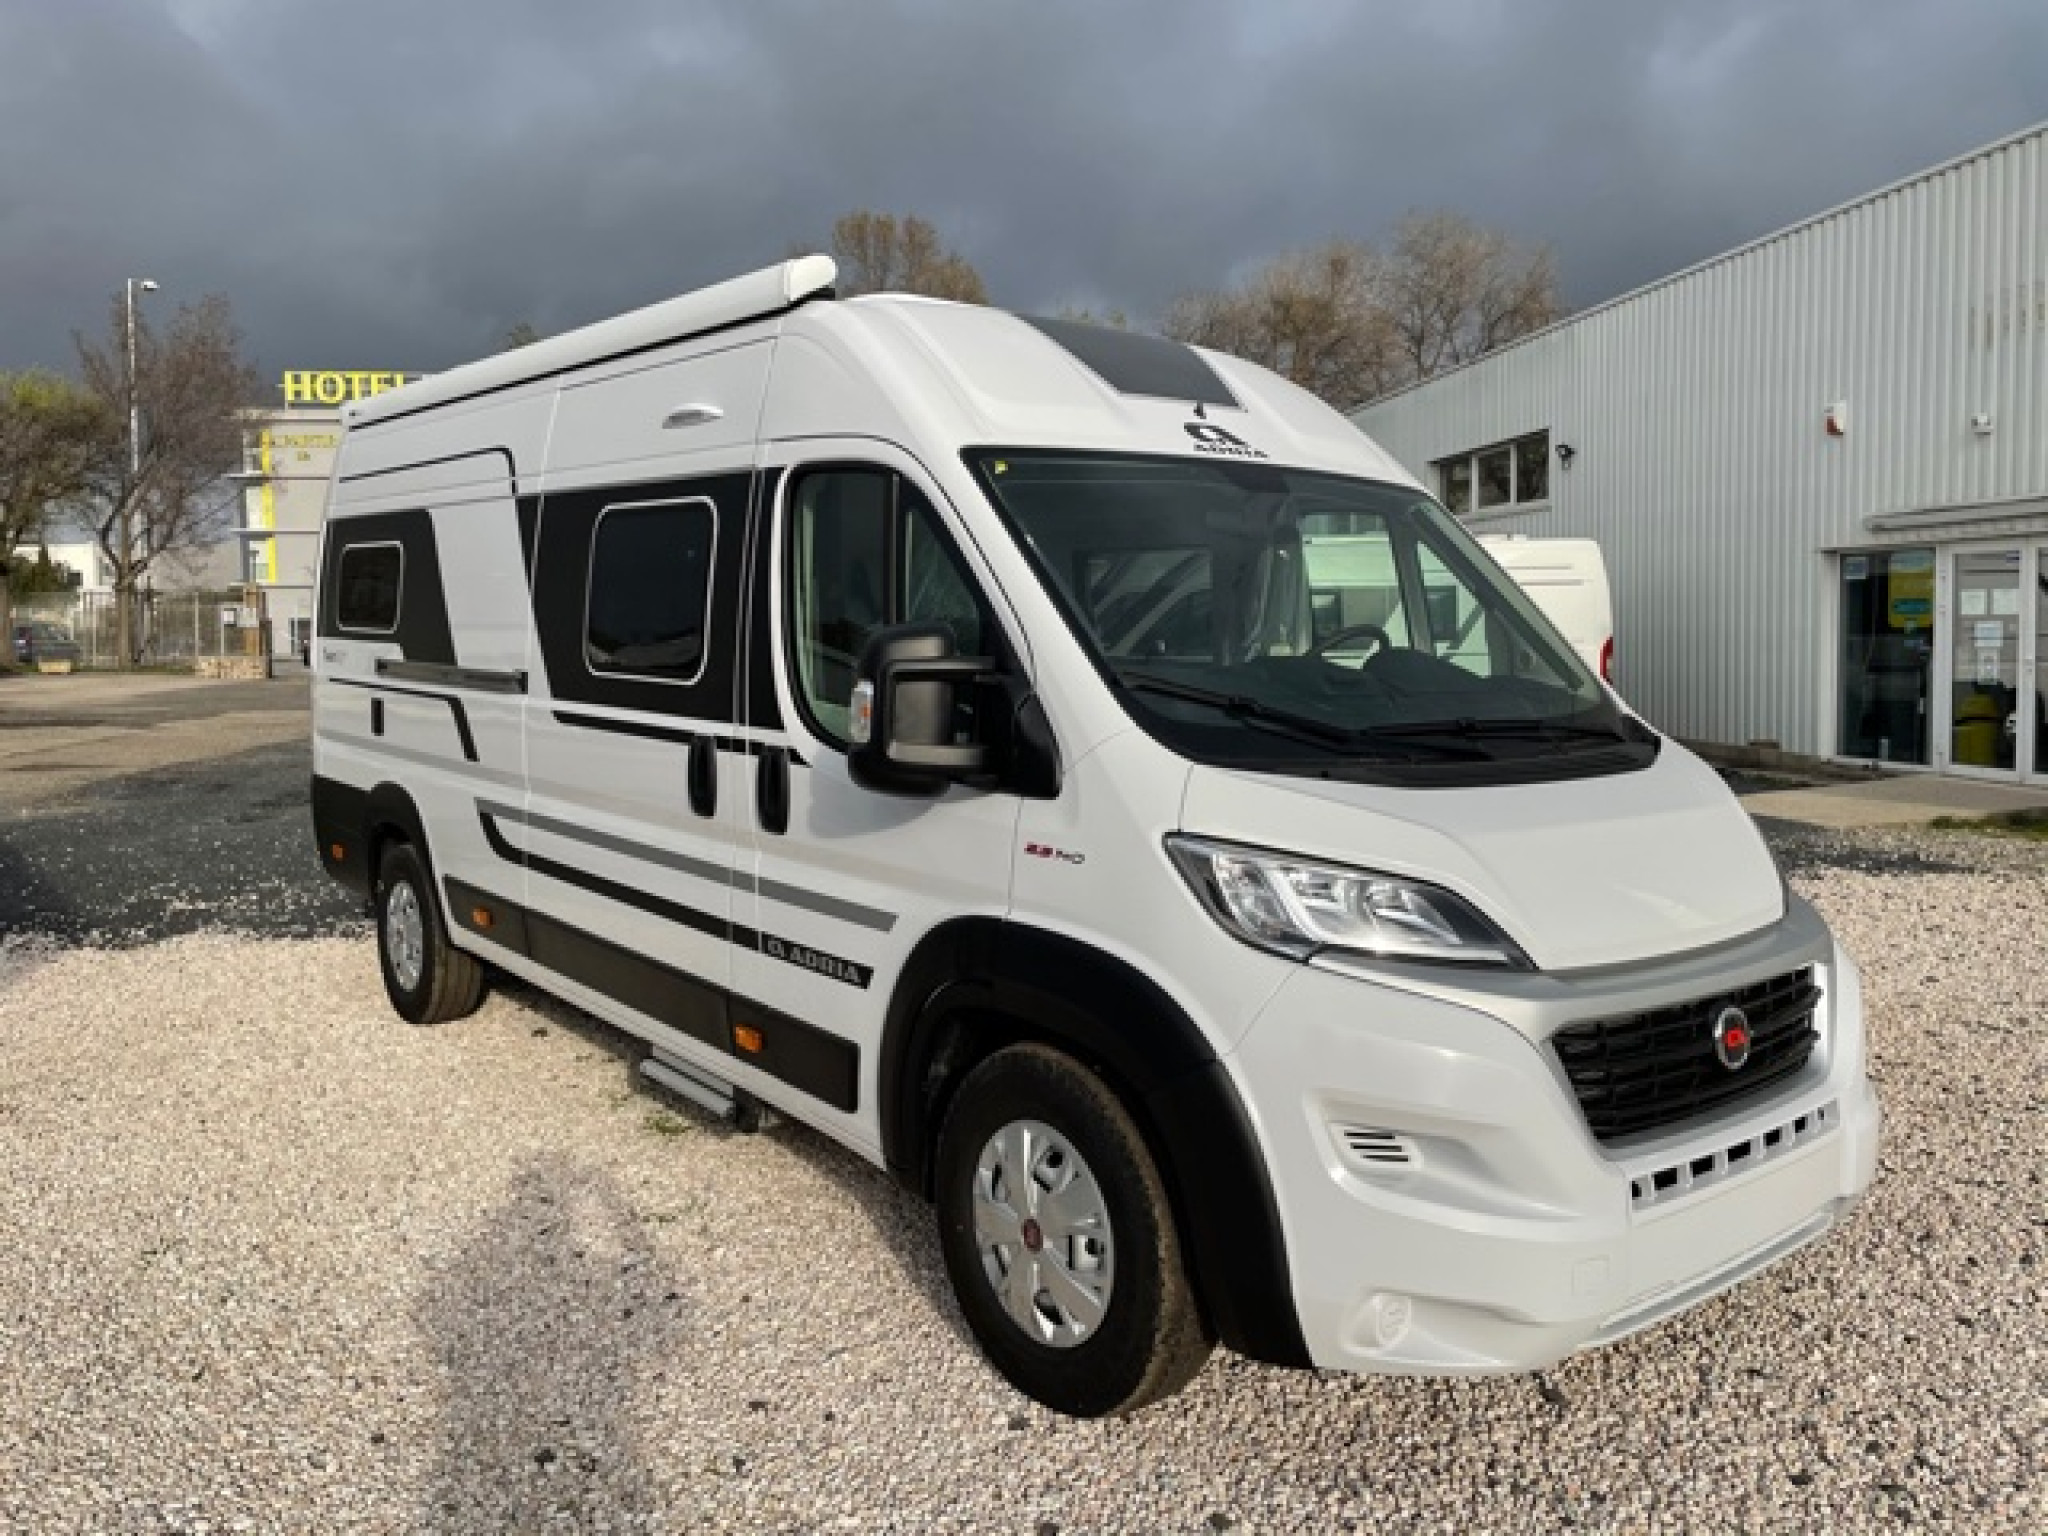 Camping-car ADRIA TWIN PLUS 640 SLB